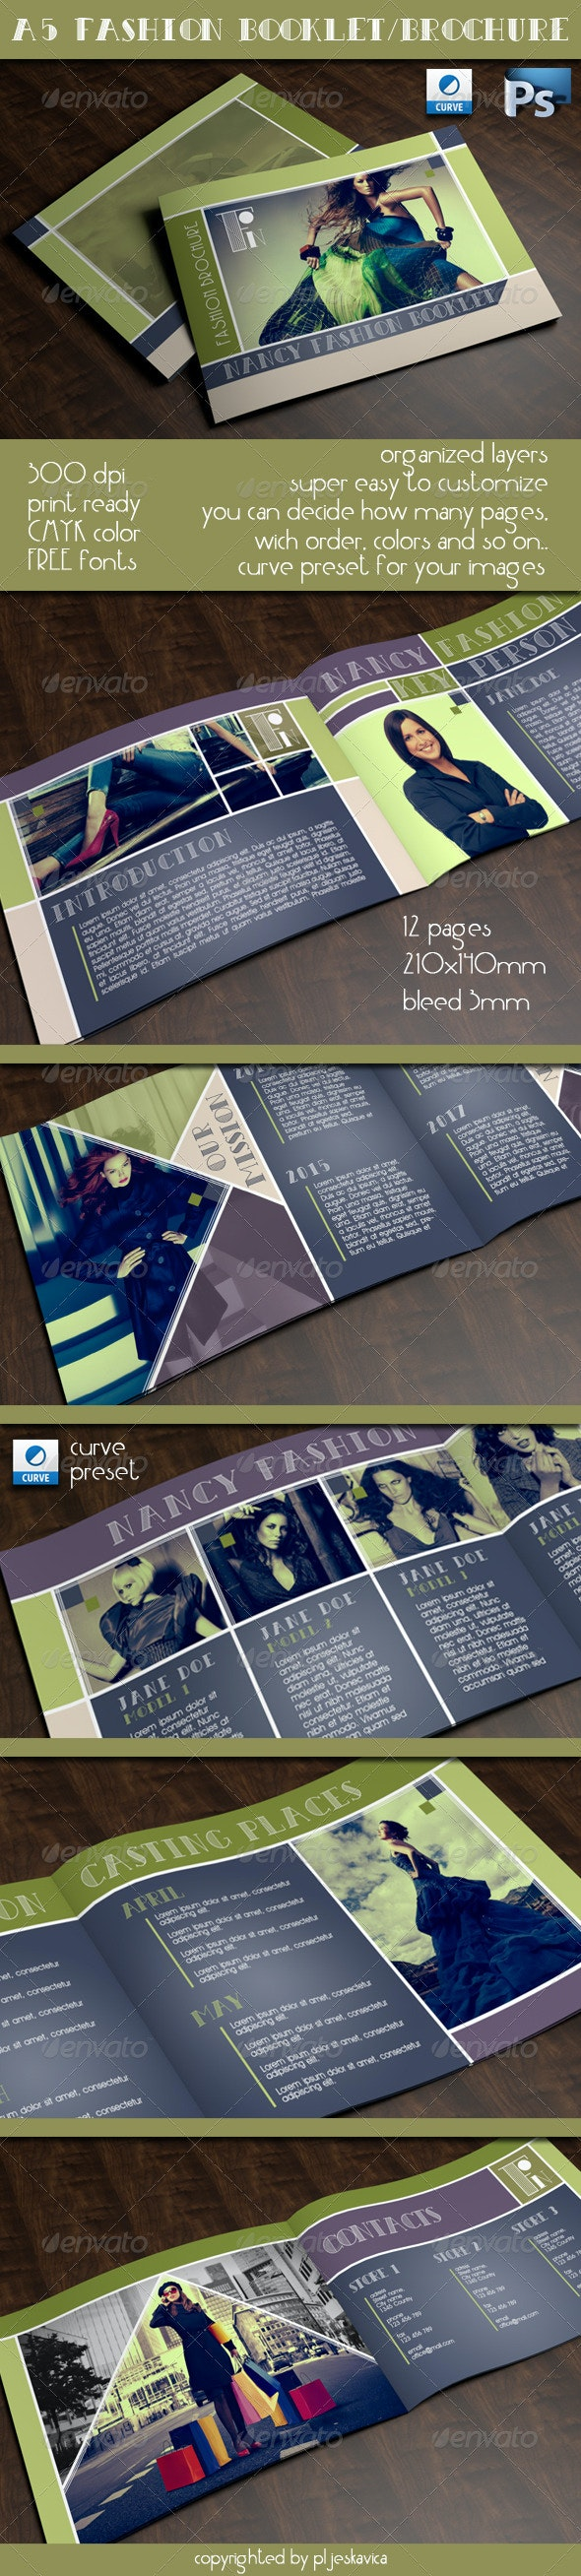 A5 Fashion Booklet / Brochure - Catalogs Brochures